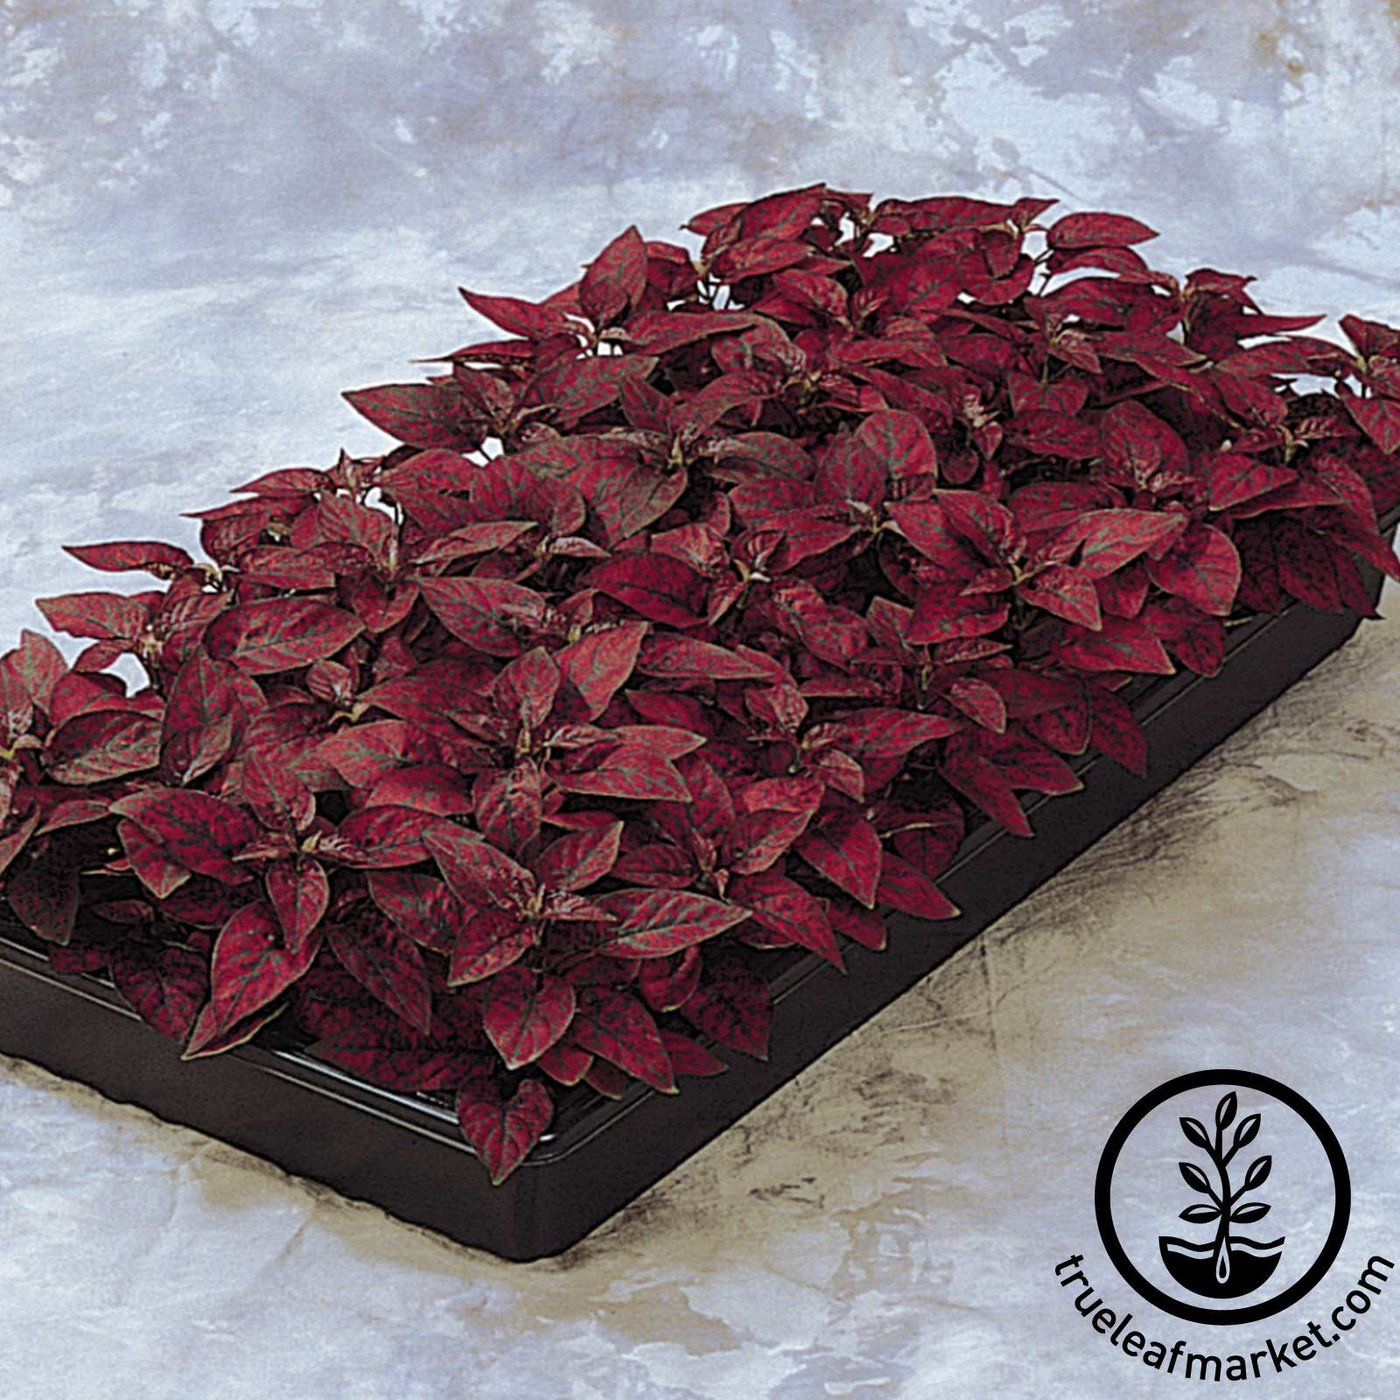 Discover The Splash Series Hypoestes Seed Among A Wide Selection Of